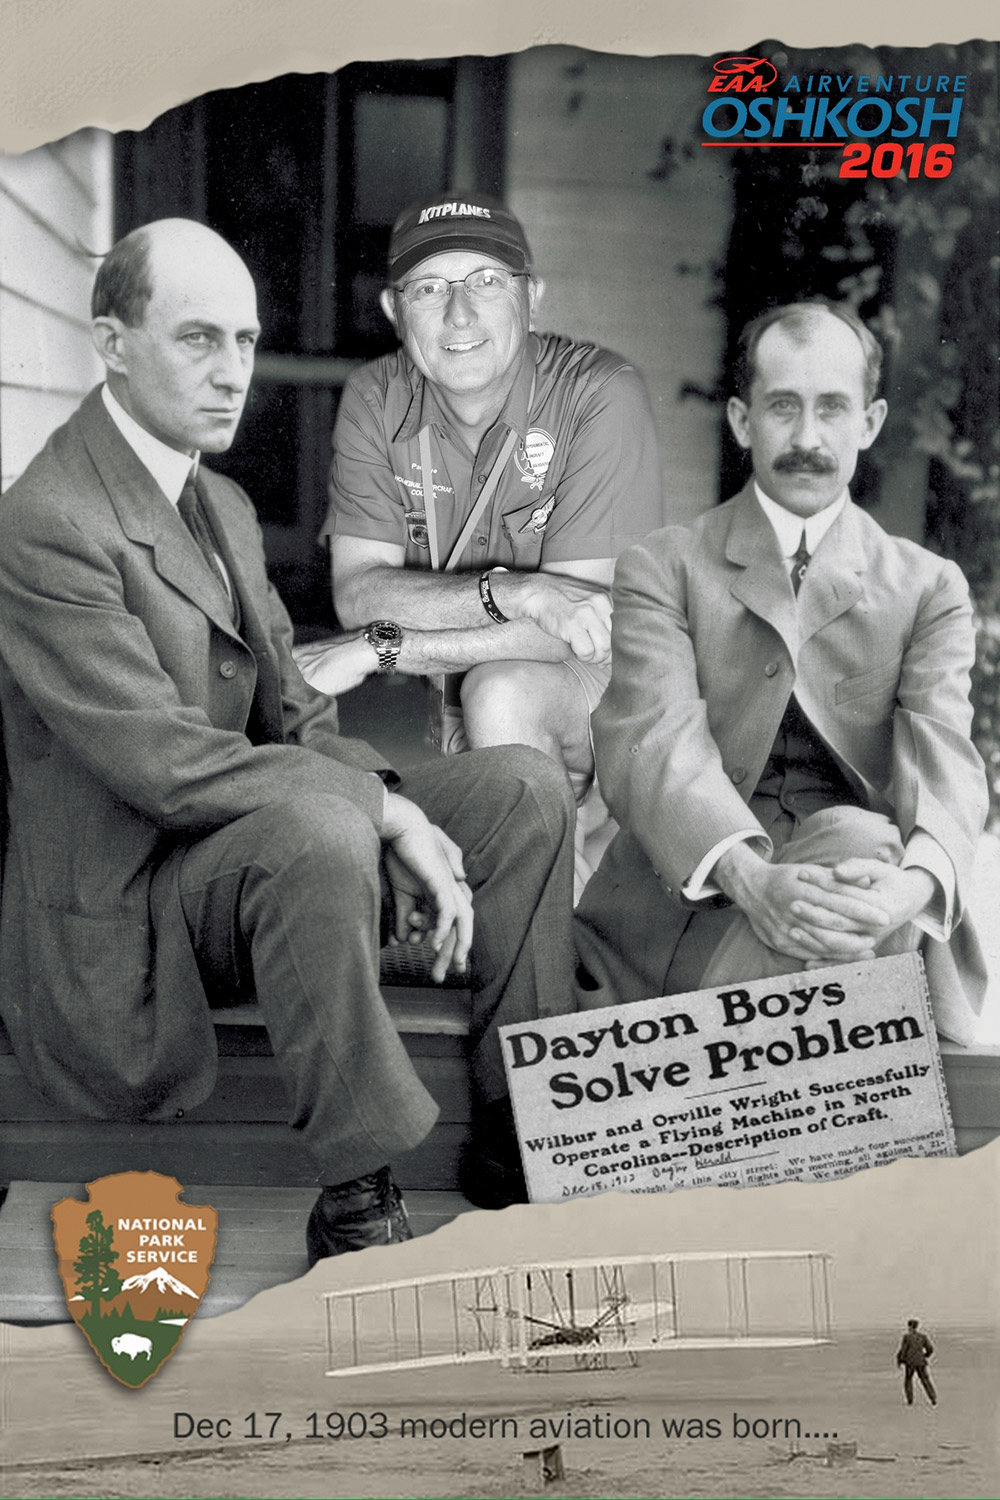 Paul Dye with Wright Brothers